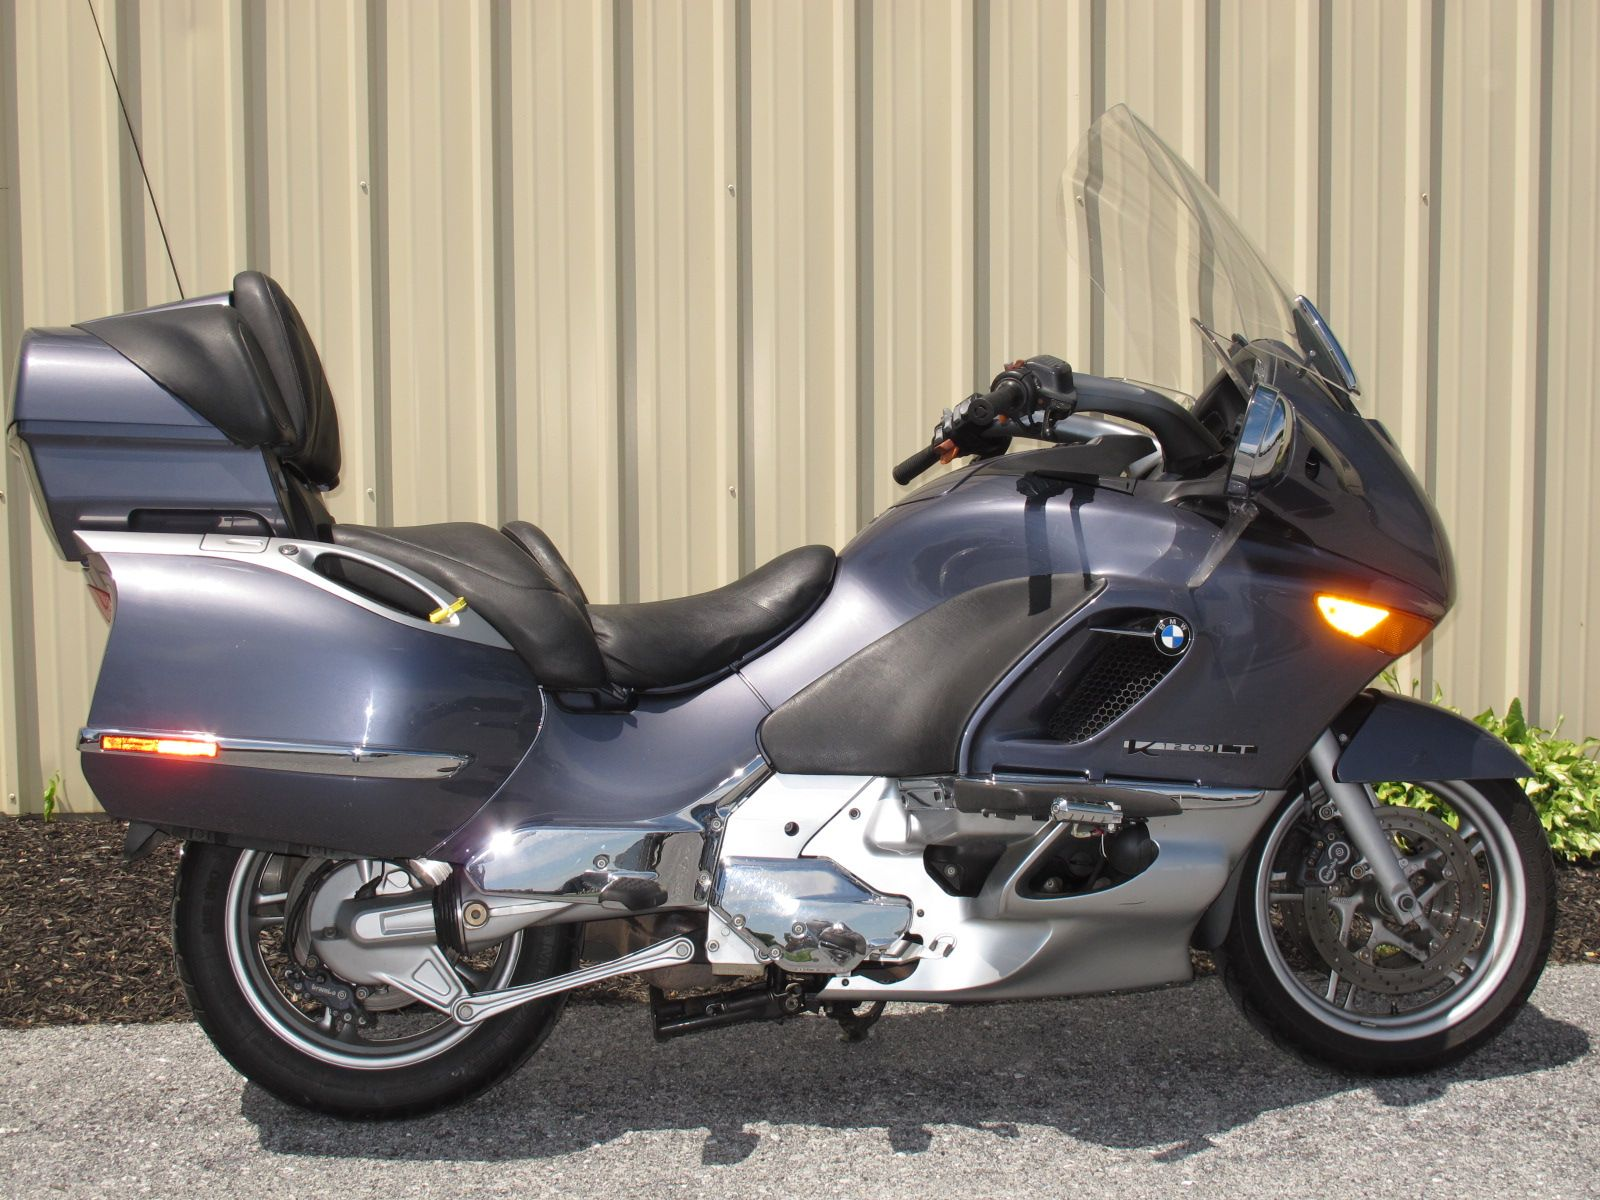 BMW K1200LT Motorcycles for sale at Wengers of Myerstown